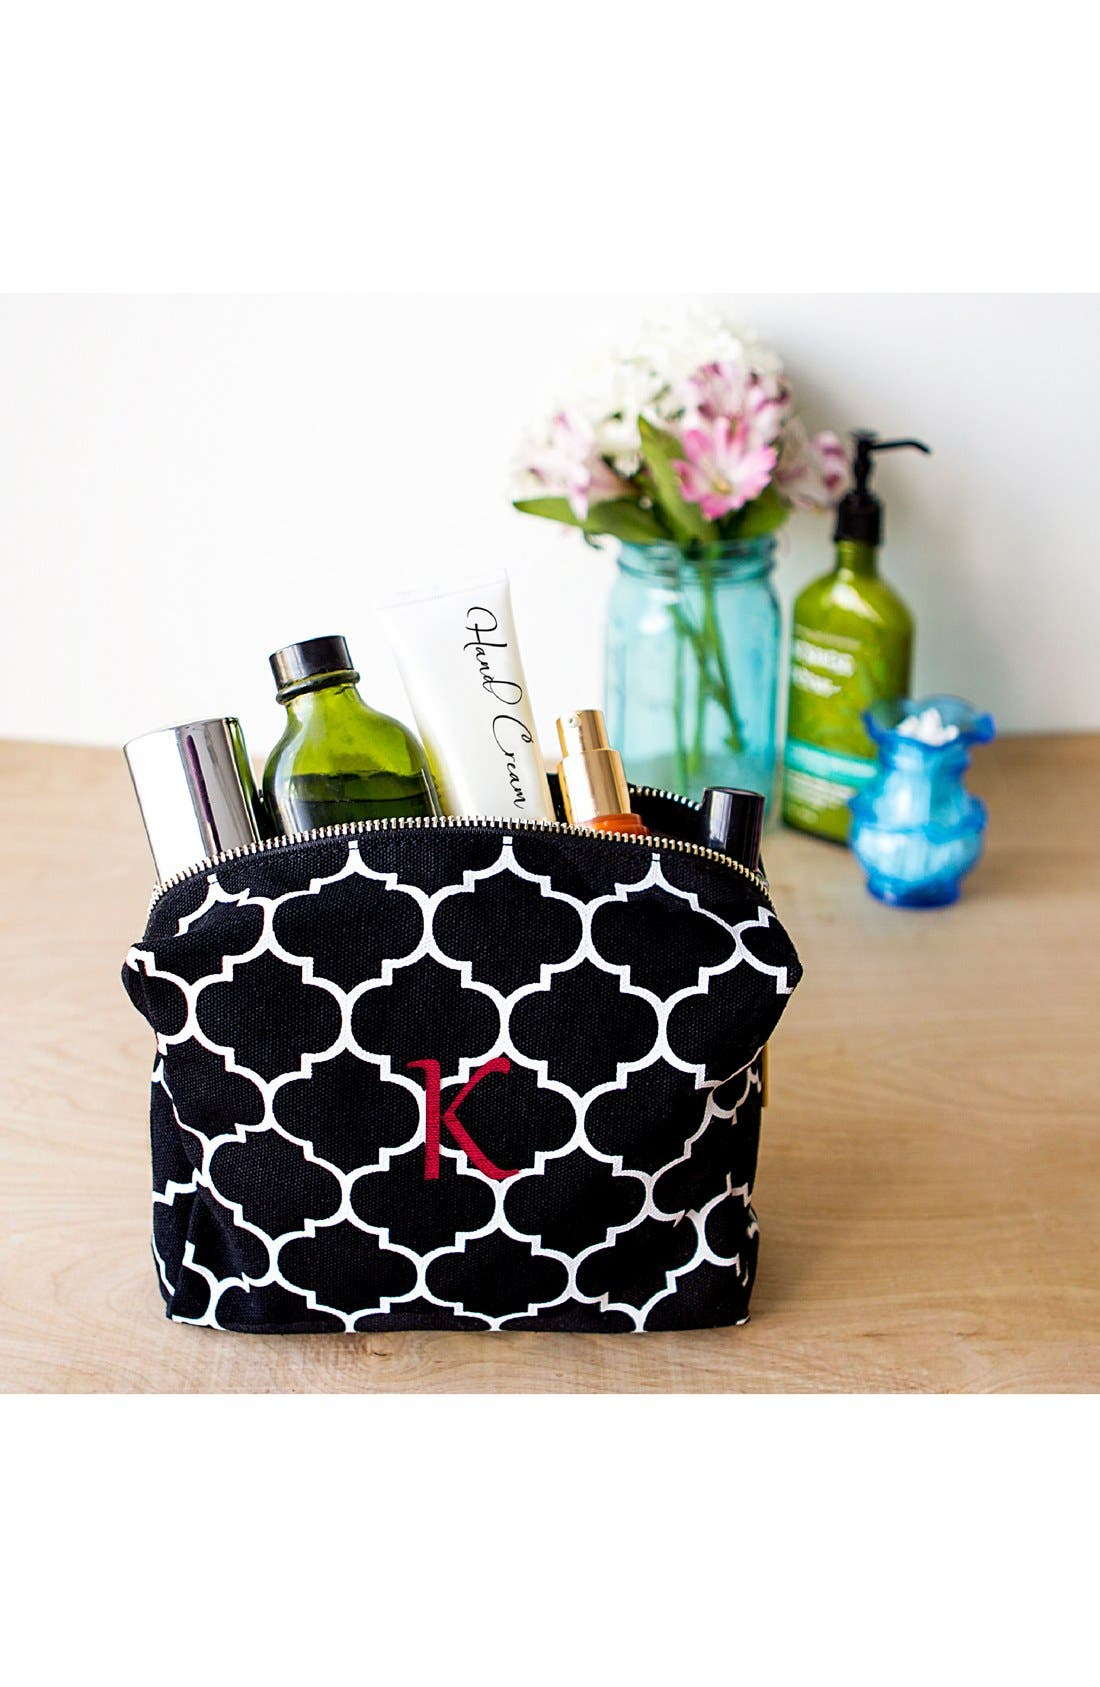 Monogram Cosmetics Bag,                             Alternate thumbnail 2, color,                             BLACK